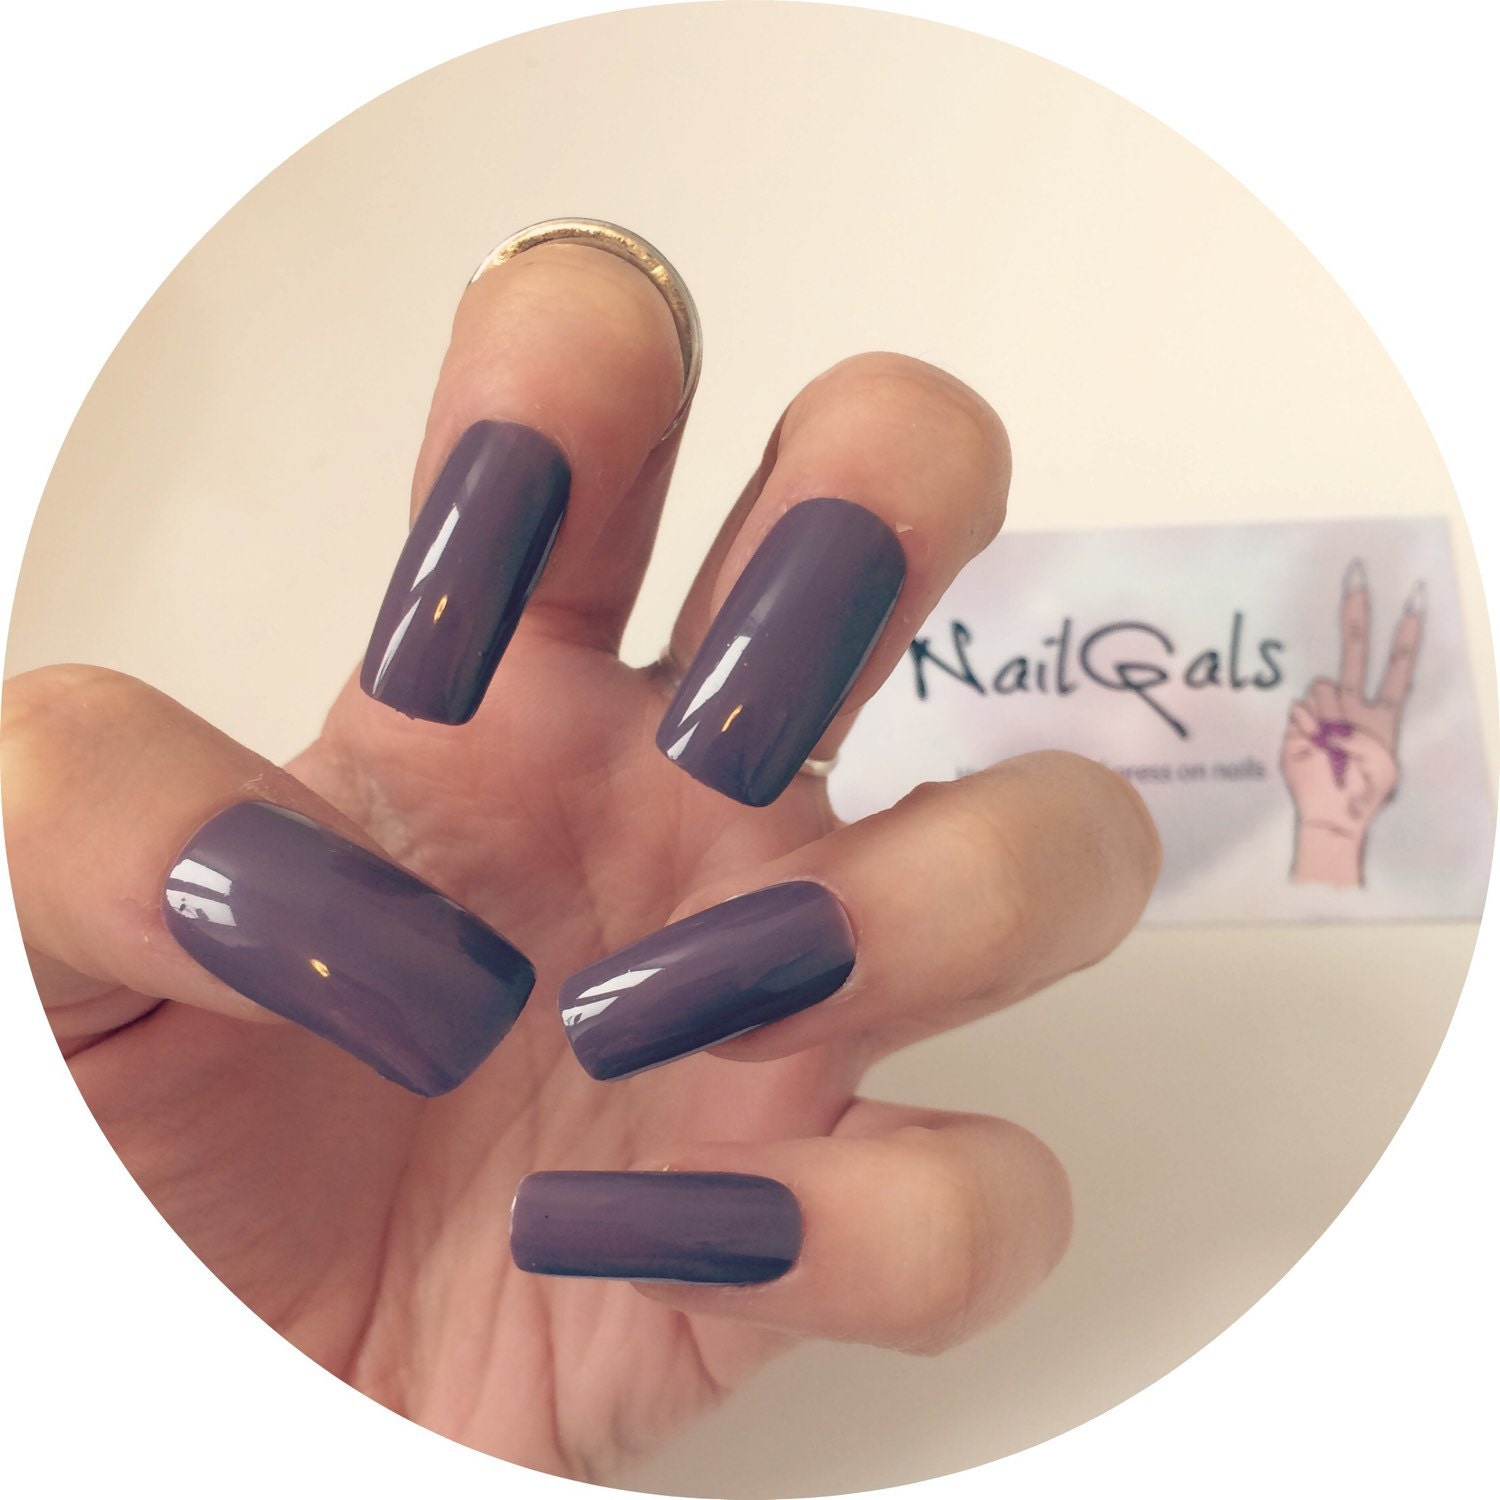 Images of Black Square Nails - #SpaceHero